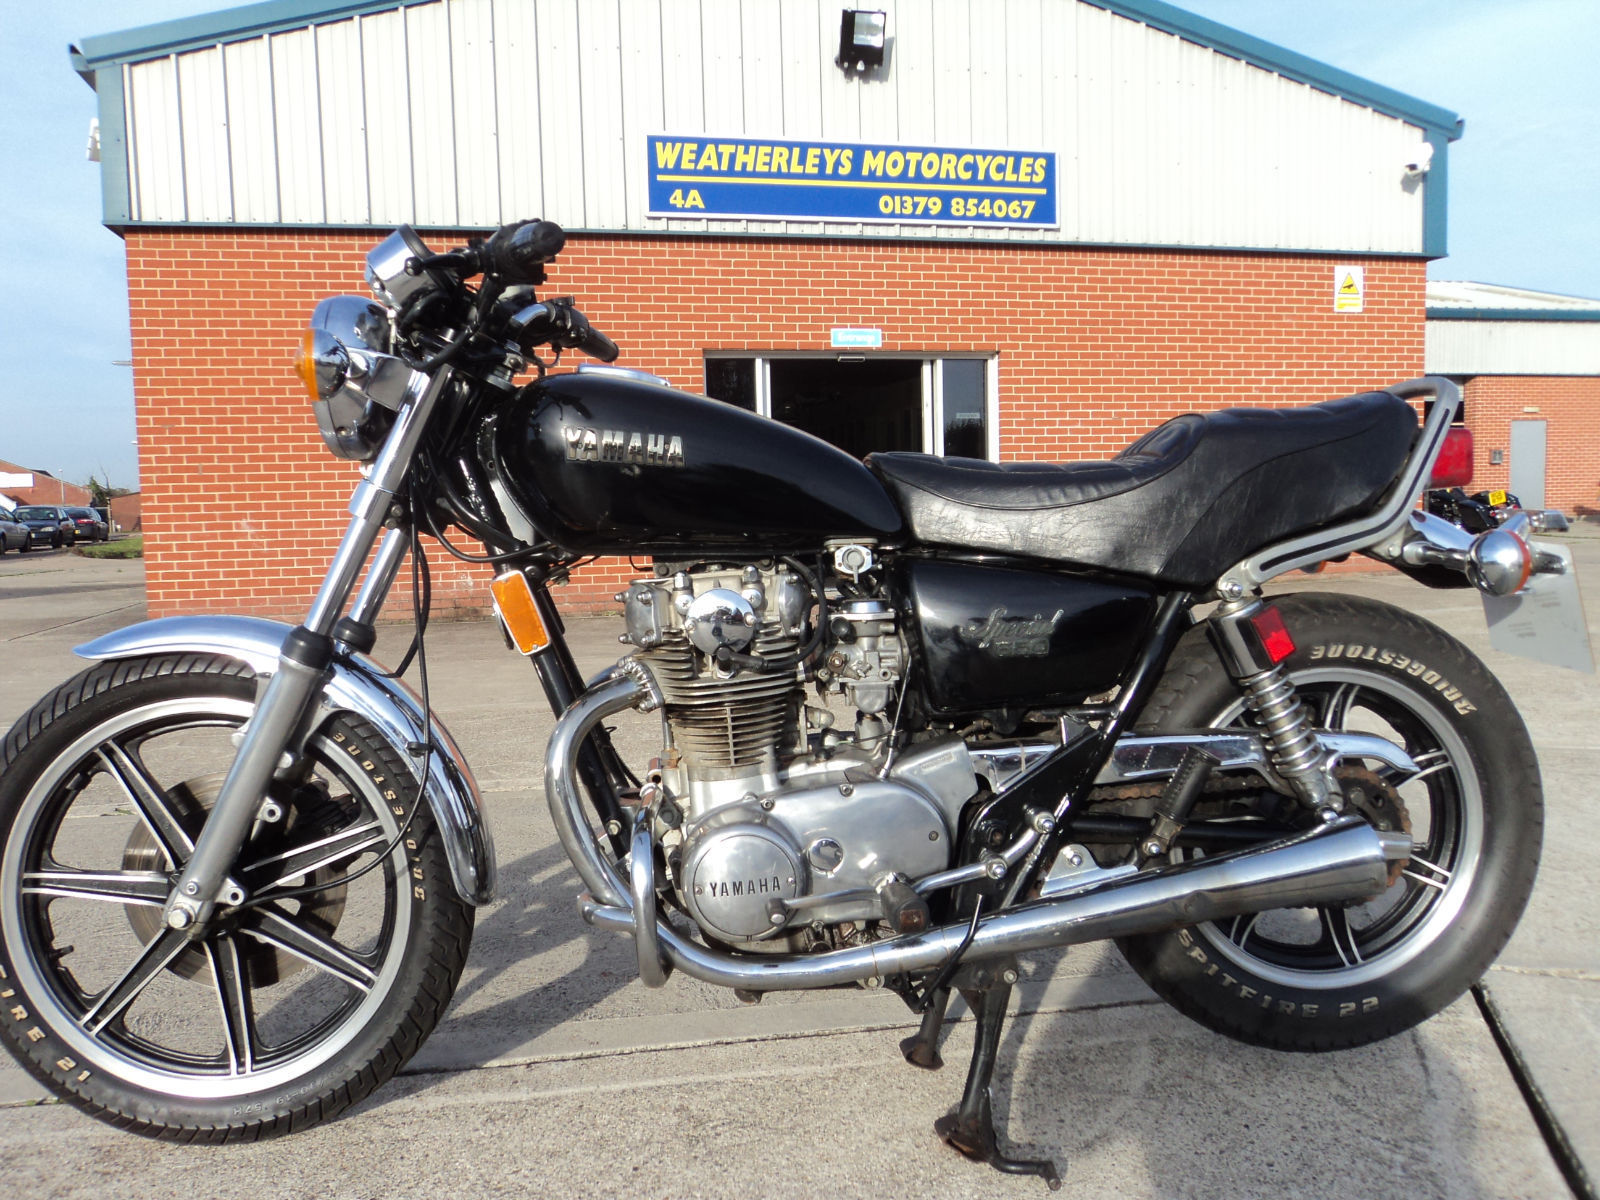 1980 Yamaha 650 Special Wiring Diagram Will Be A Thing 1978 Classic Xs650 Pictures To Pin On Ii